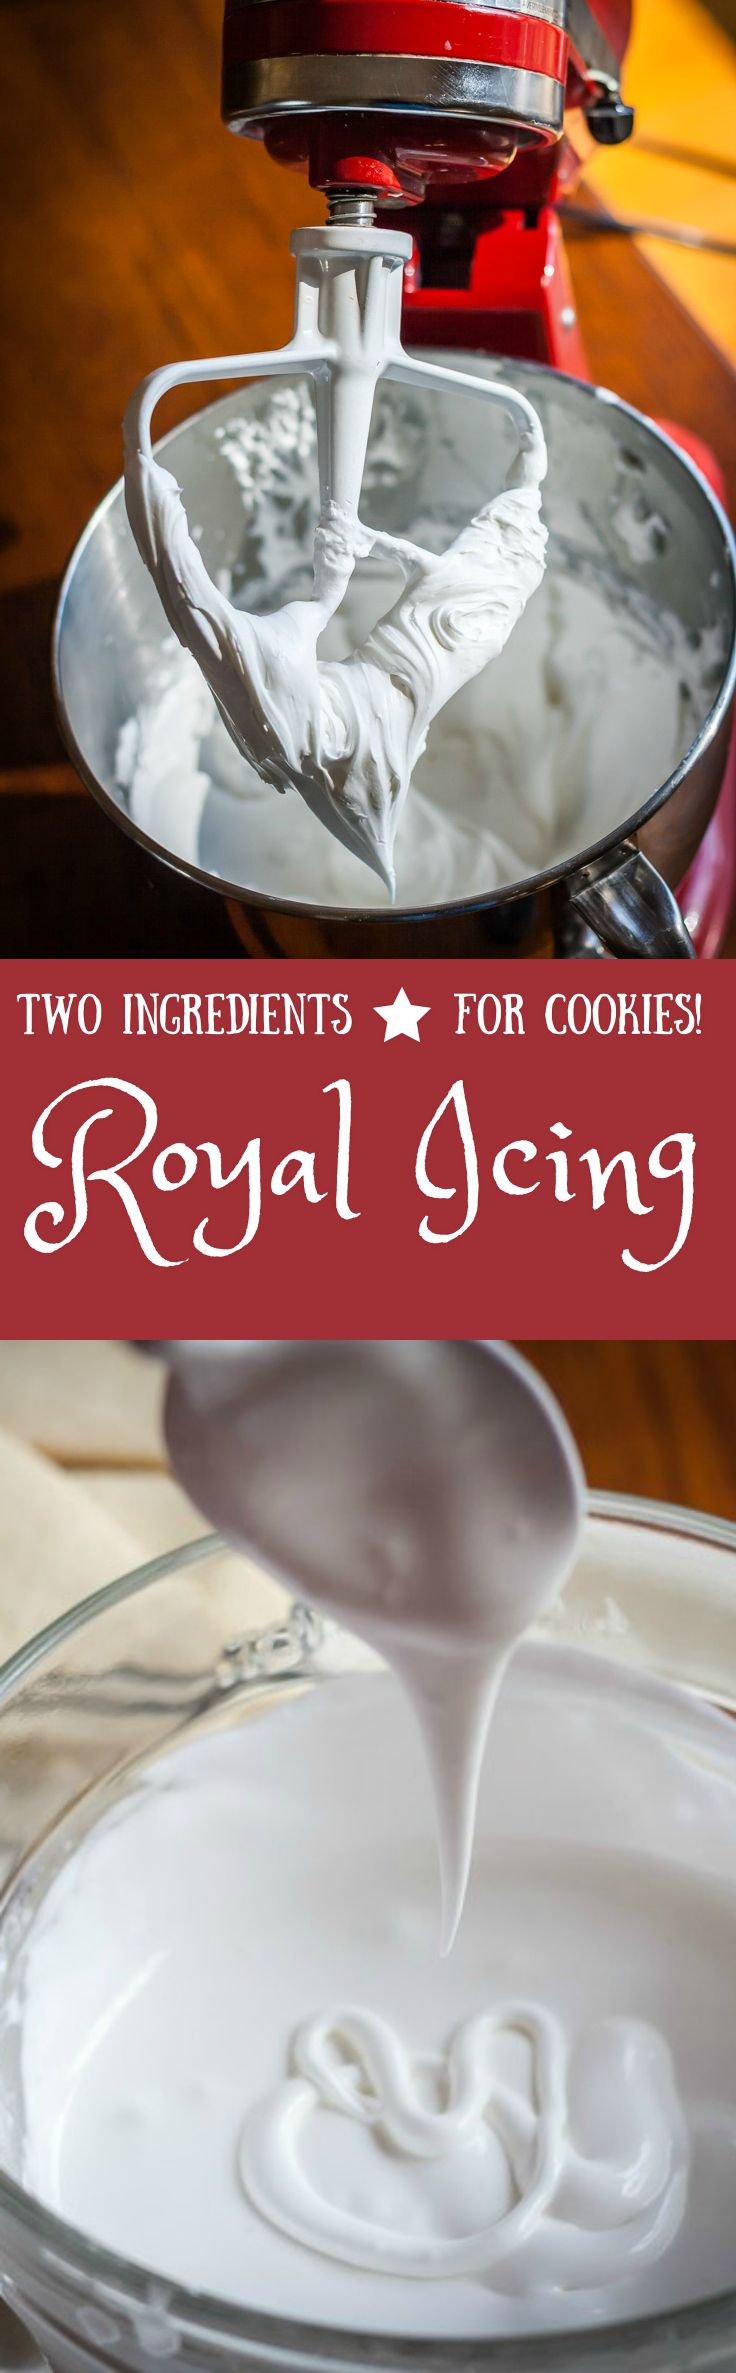 A simple royal icing recipe that works really well for decorating cookies | from teabiscuit.org